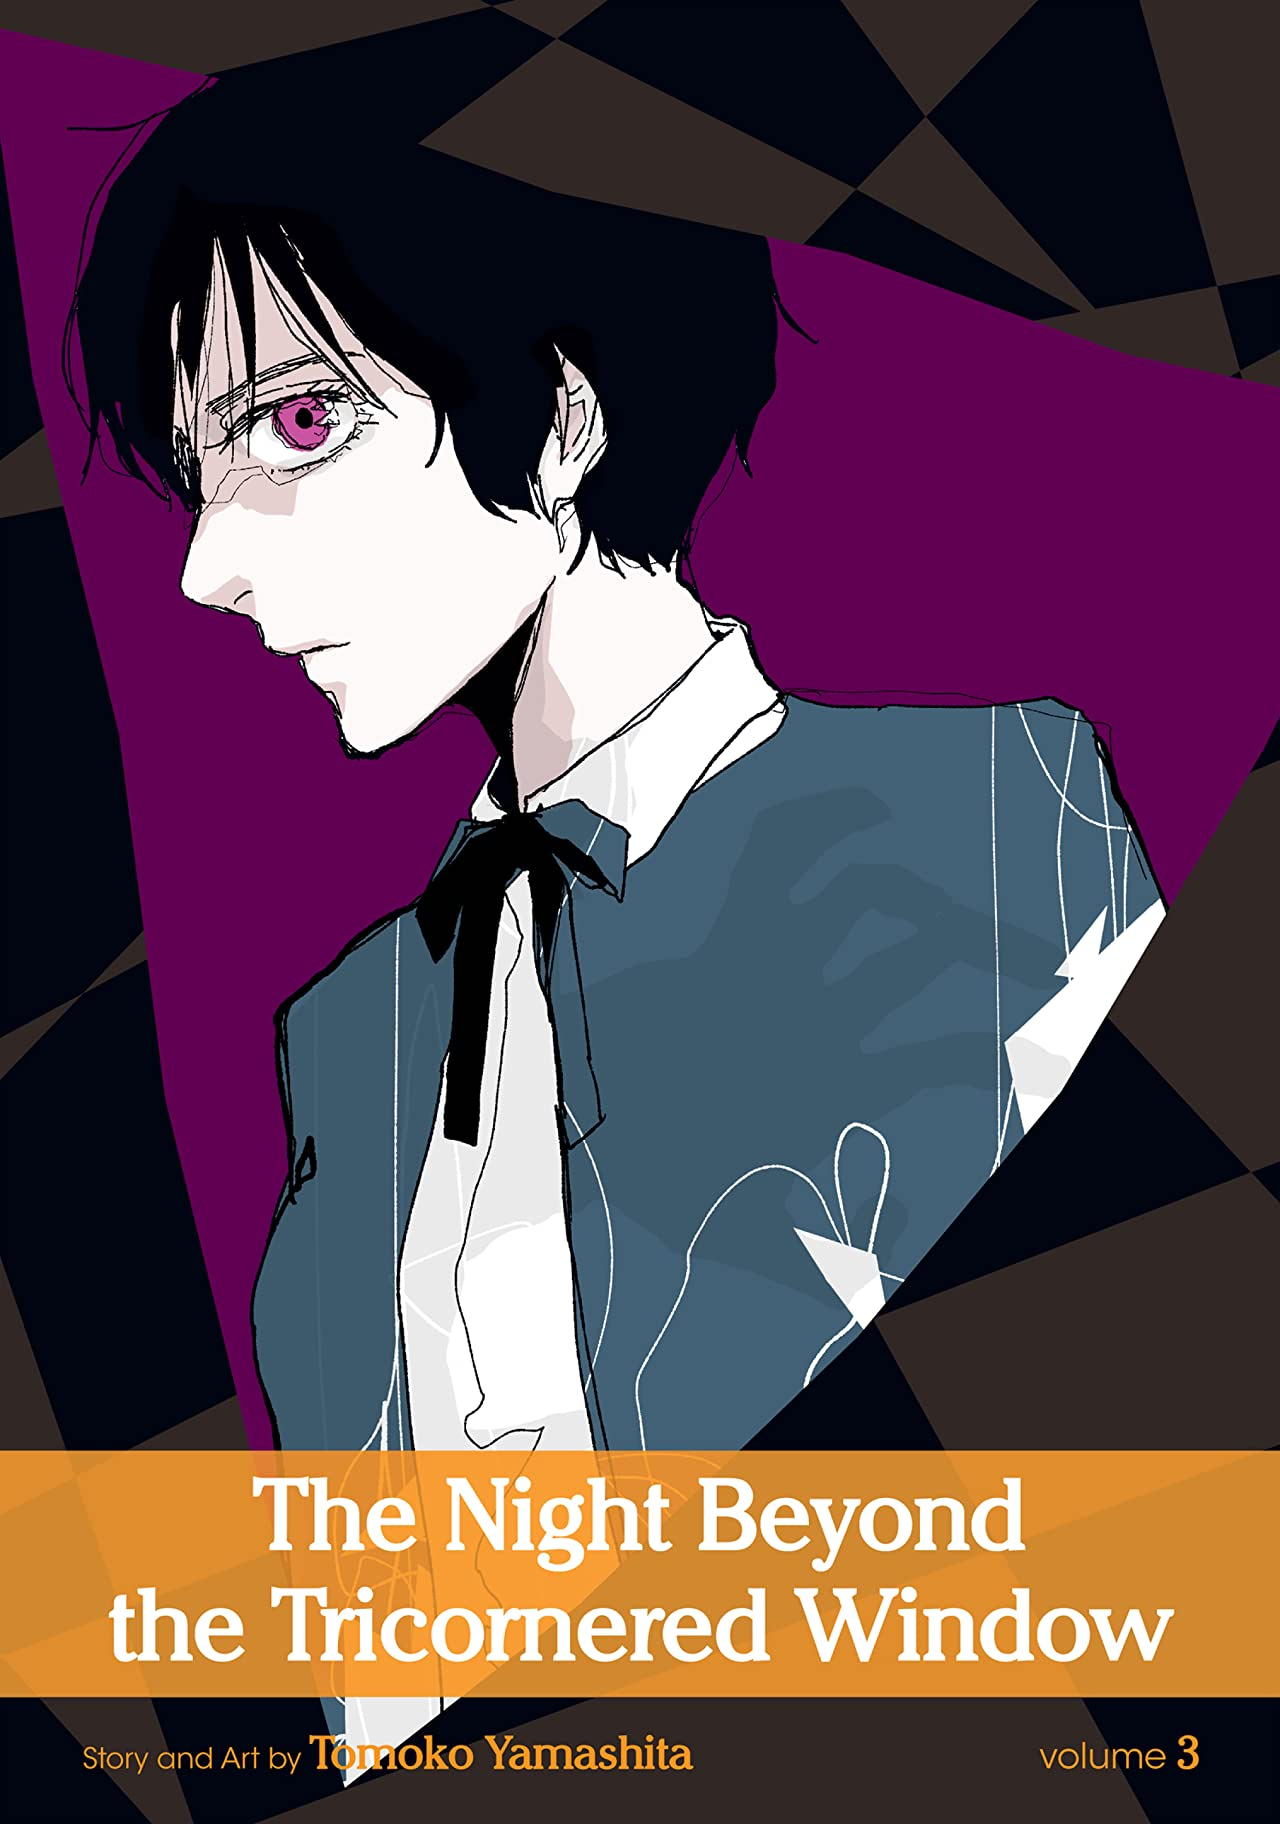 The Night Beyond the Tricornered Window Vol. 3